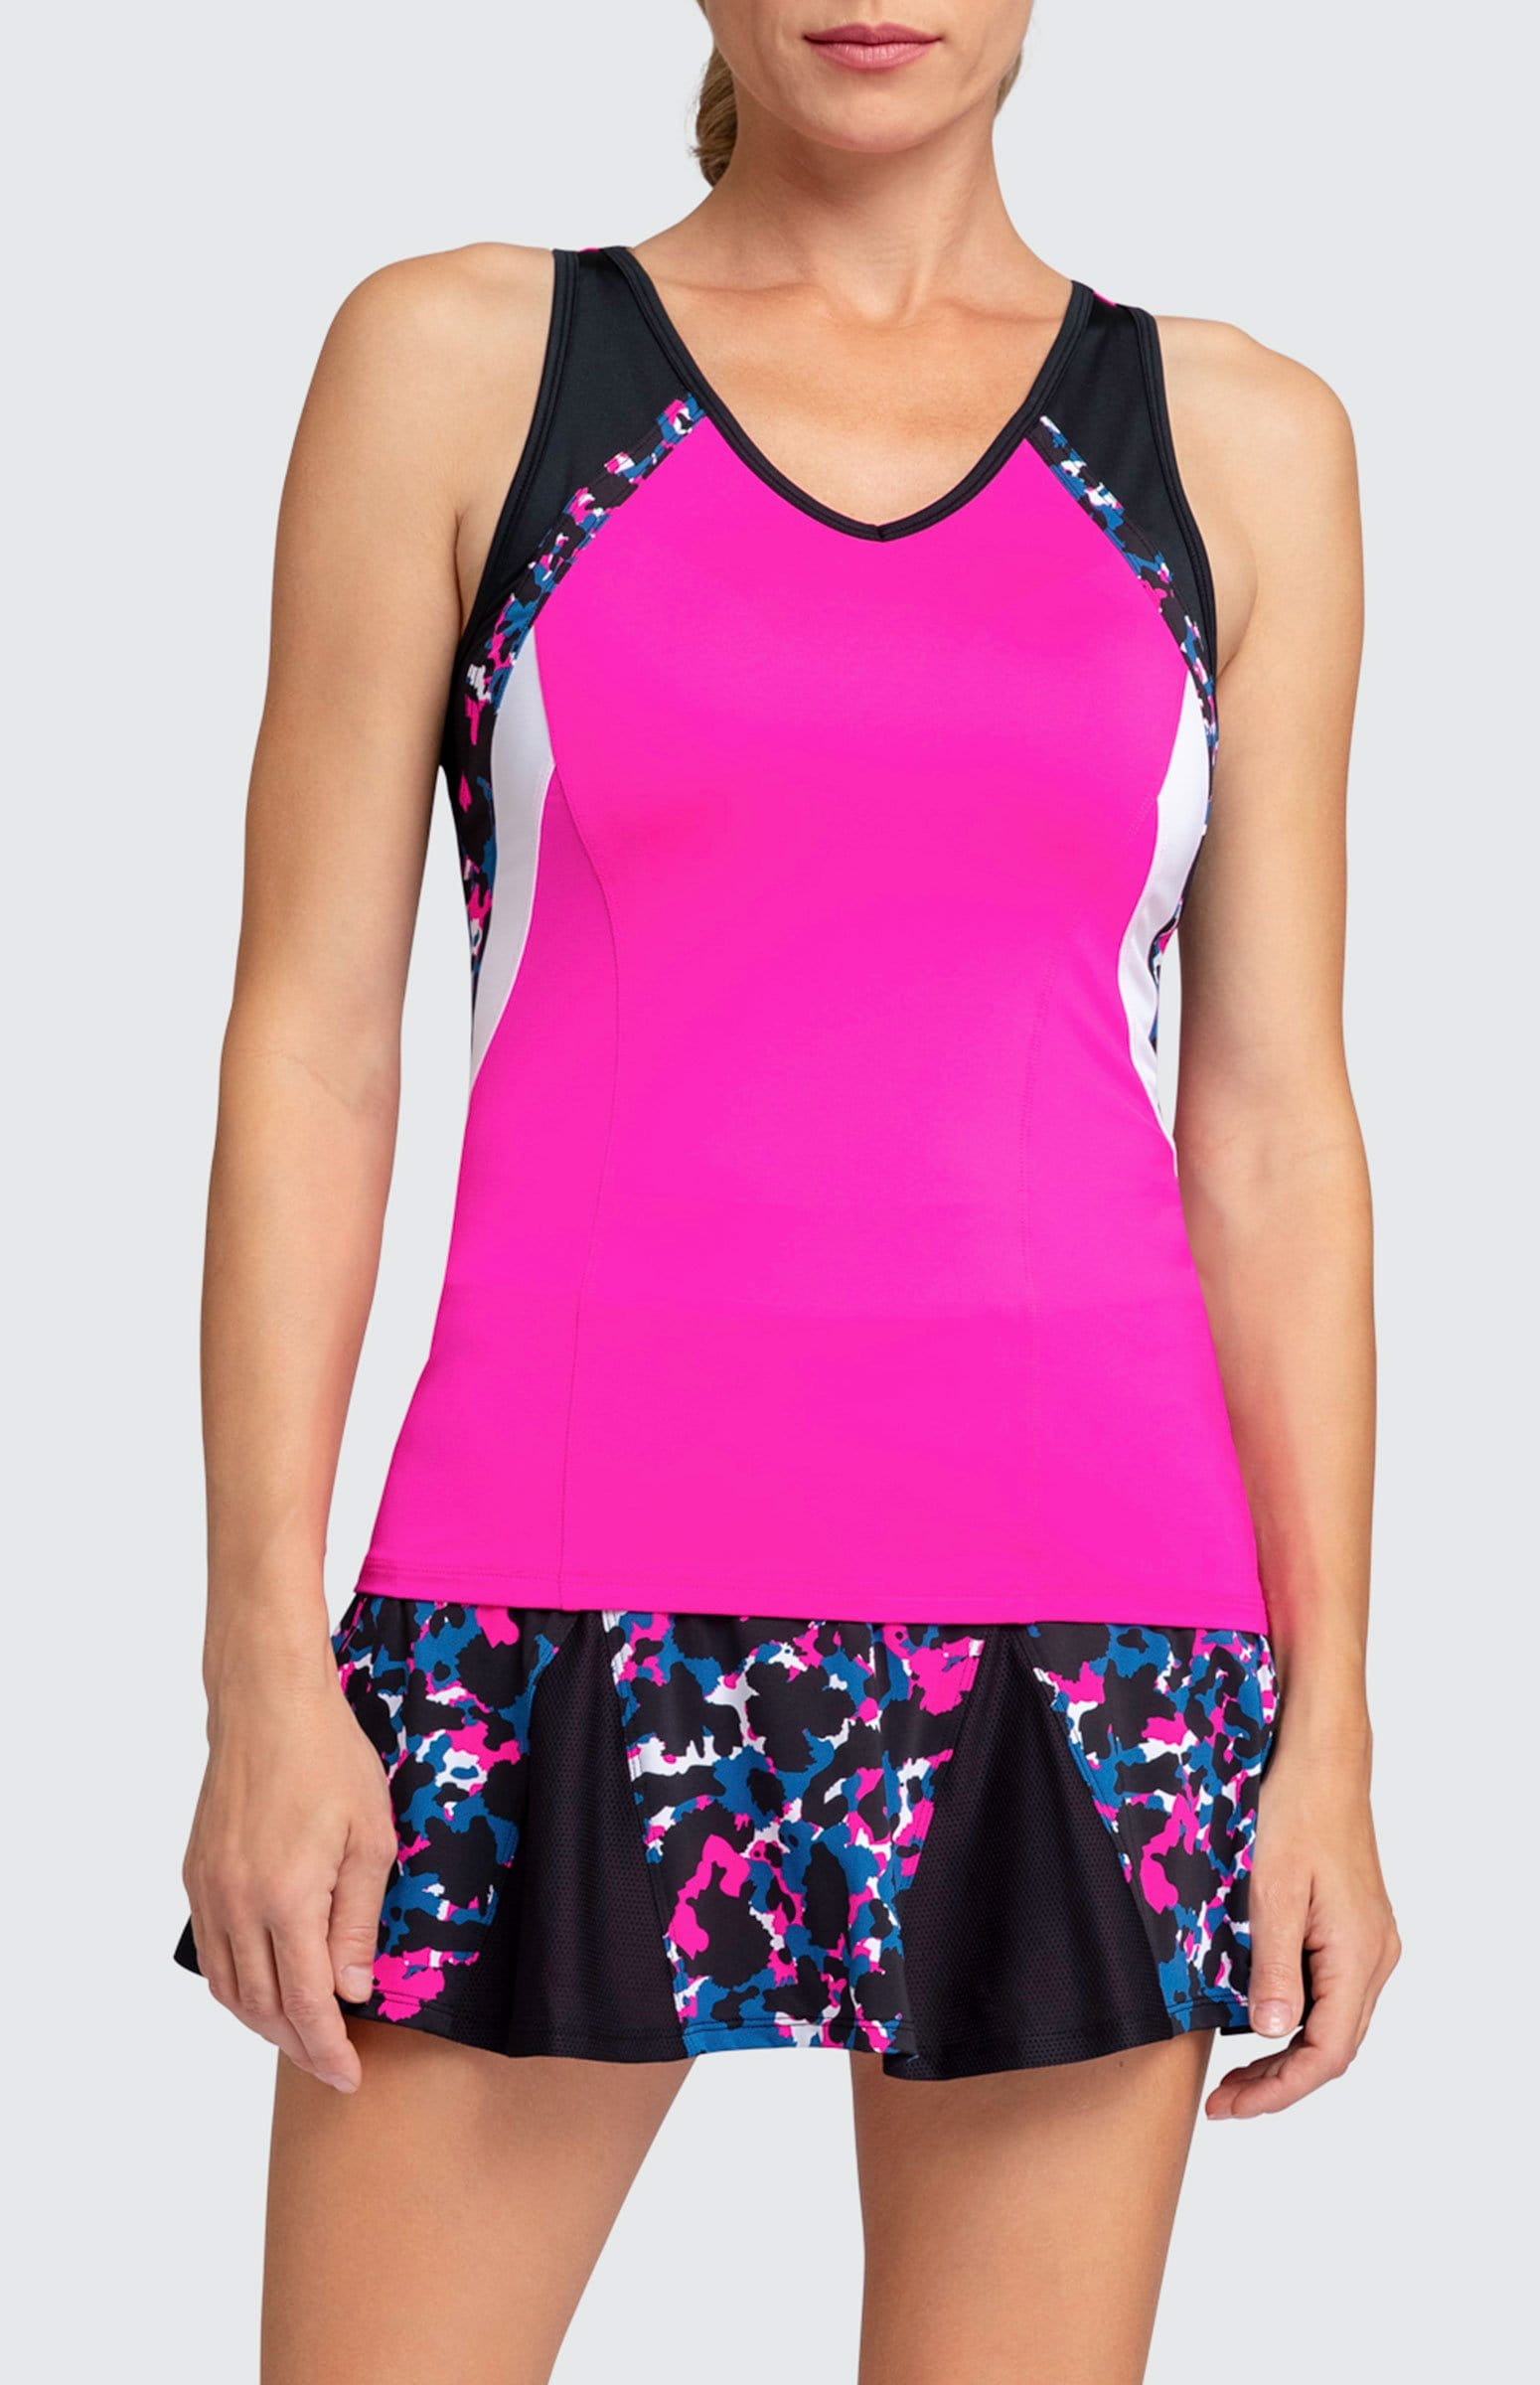 a01a057a199e1 Tennis - TAIL Activewear